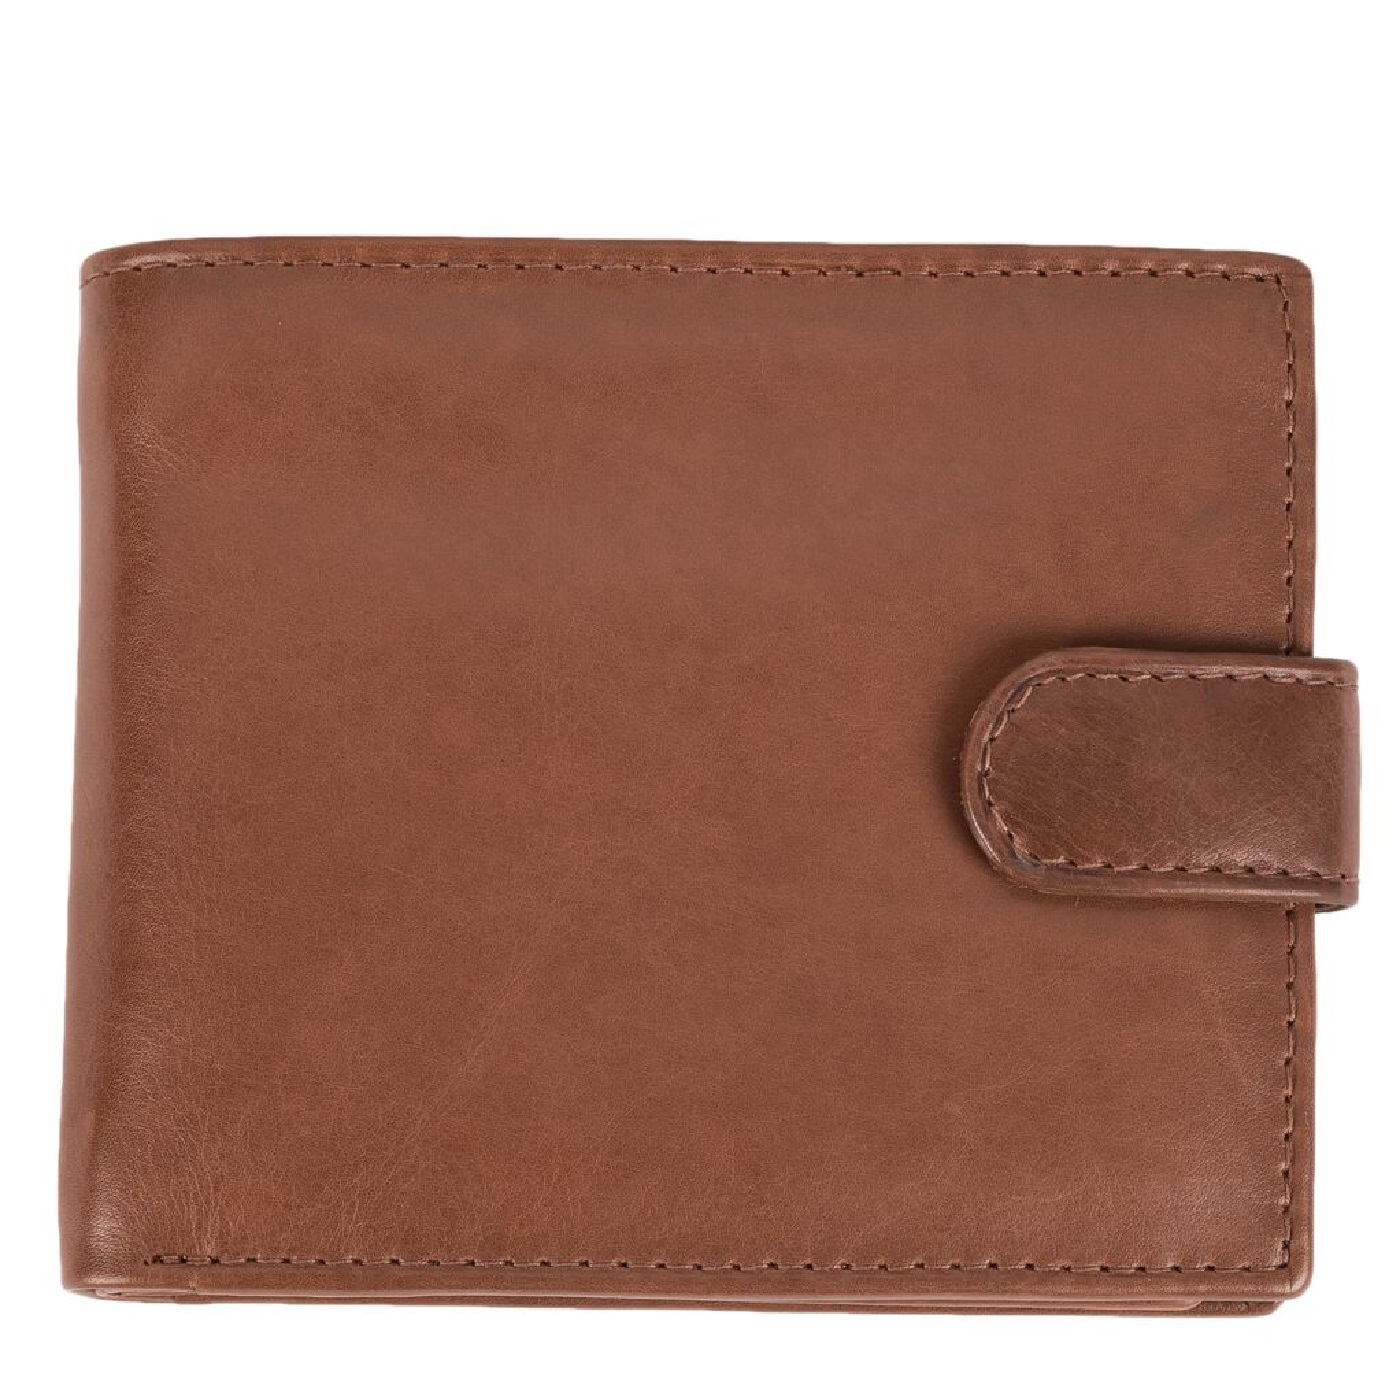 Royal-Ram-Harry-Bifold-Leather-Wallet-EL187 thumbnail 5